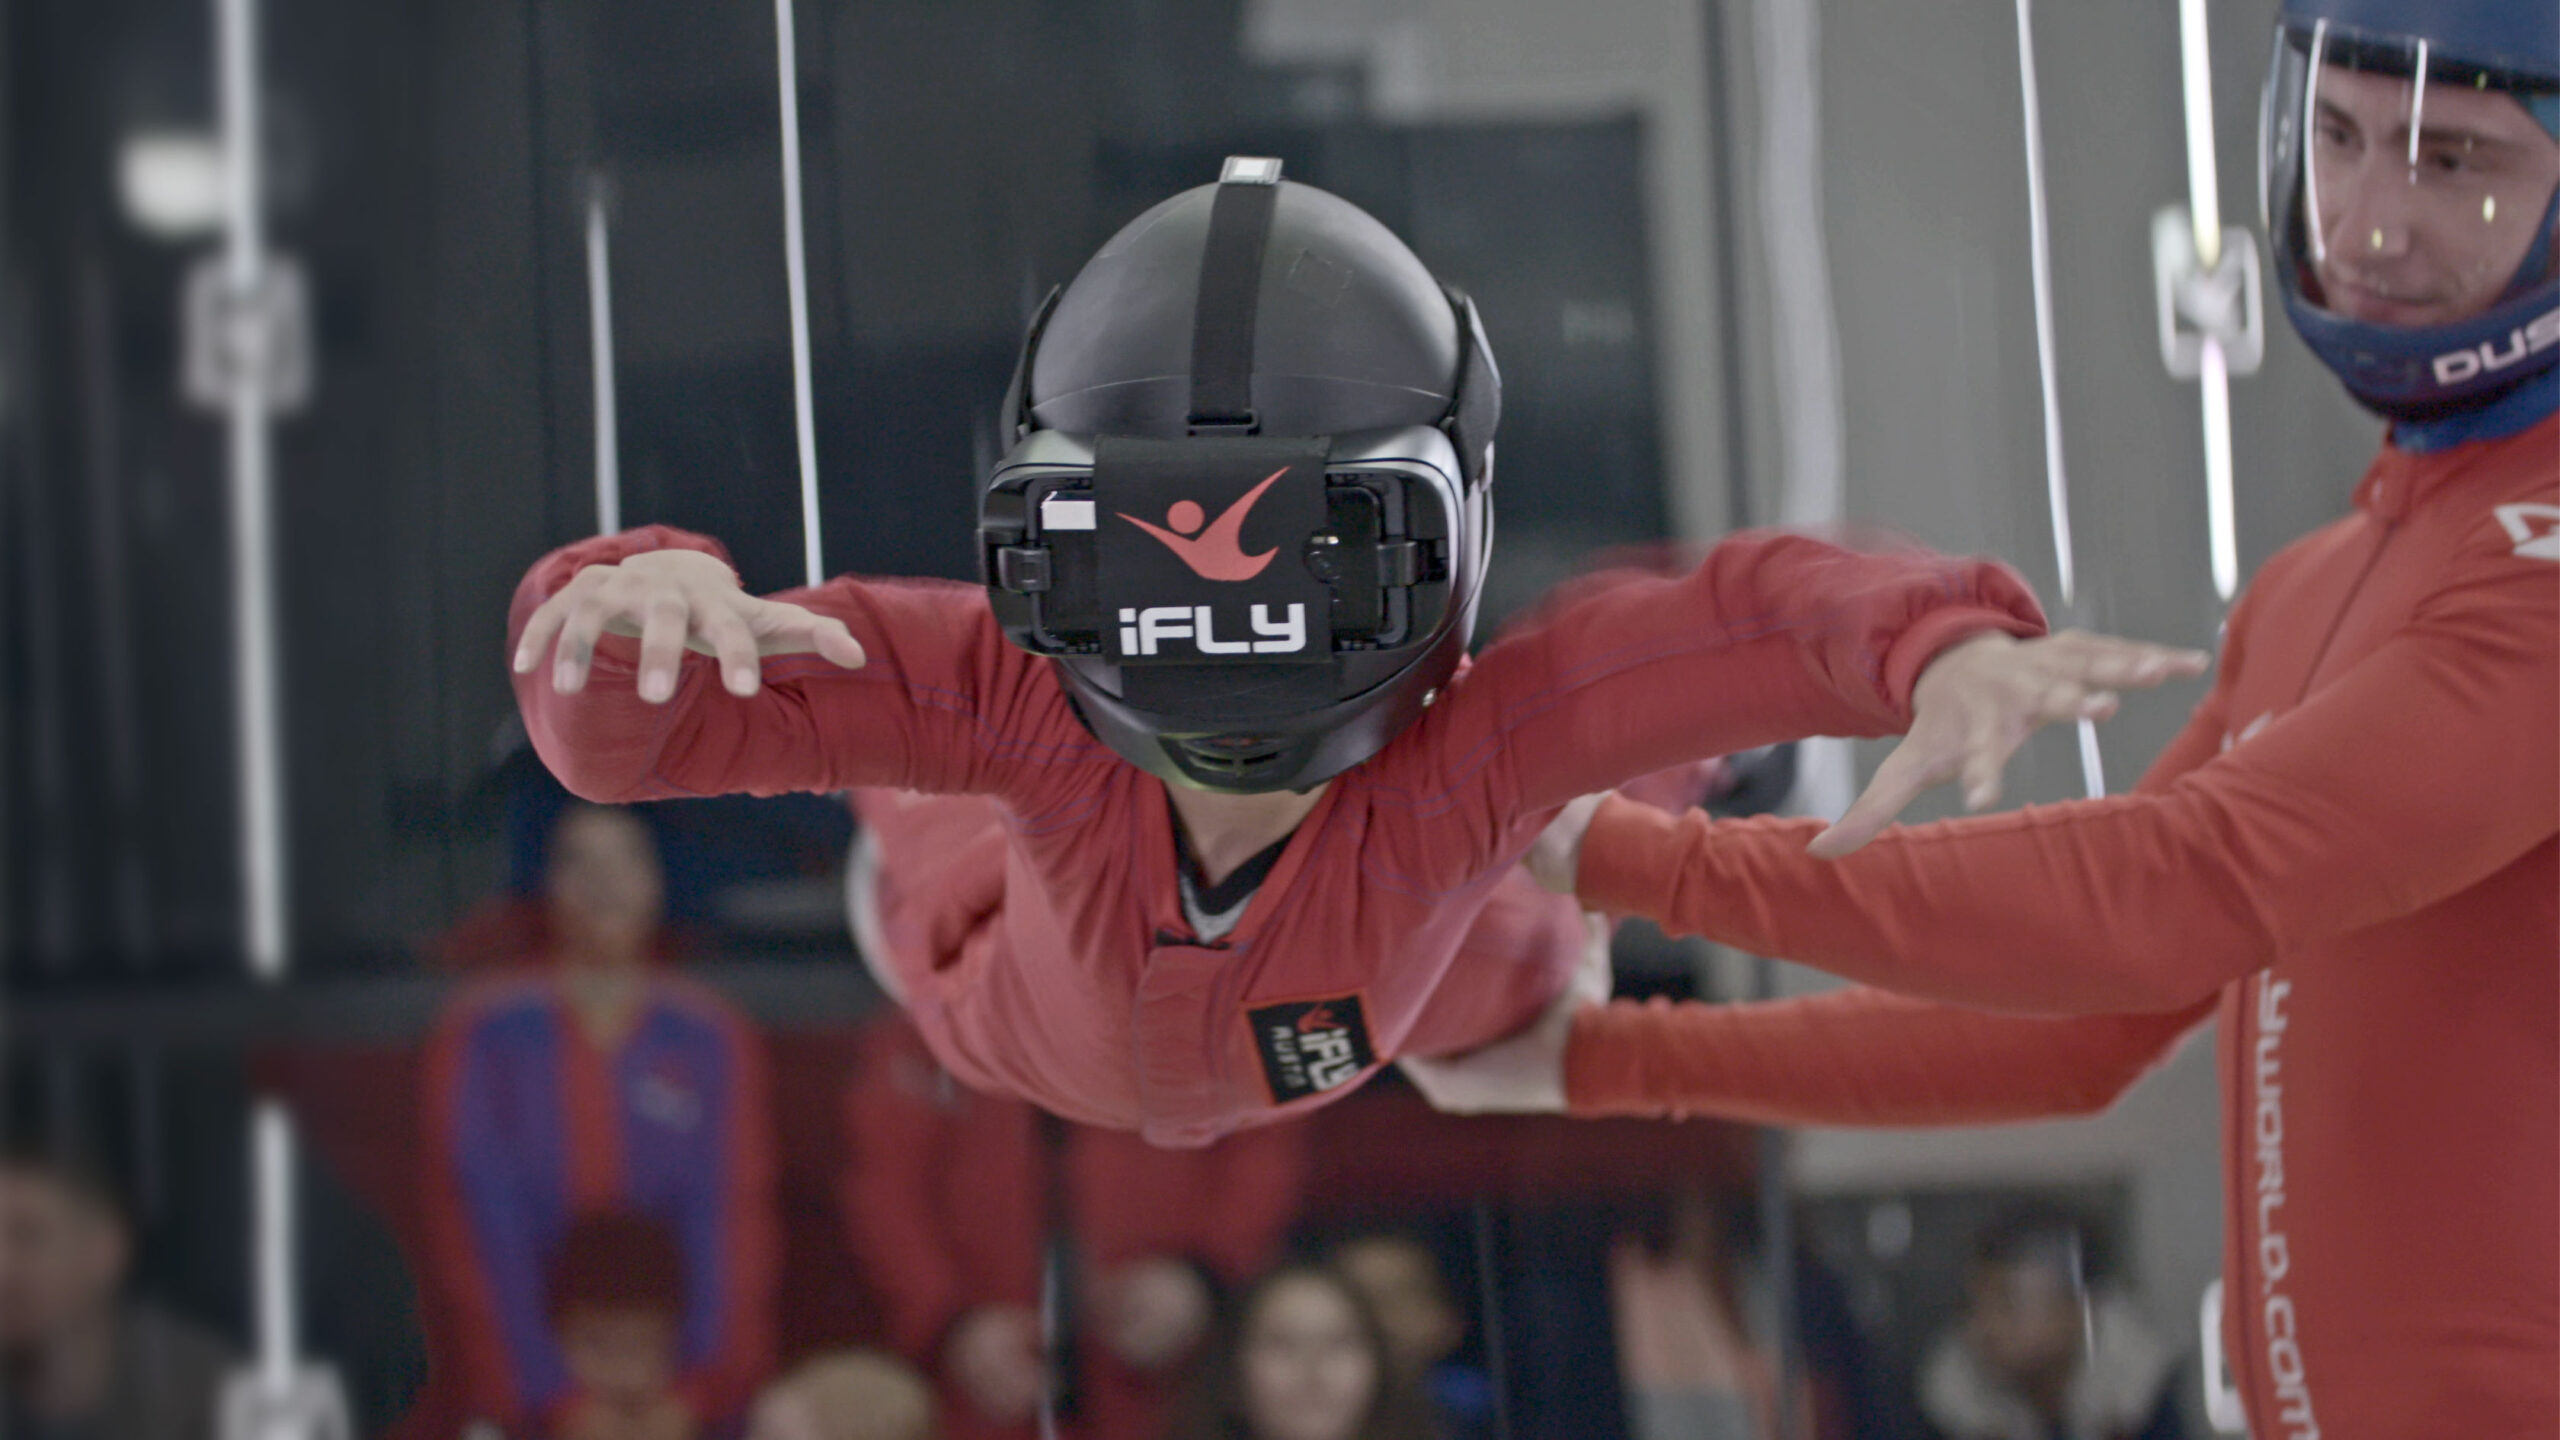 iFLY Case Study - Integrate Agency